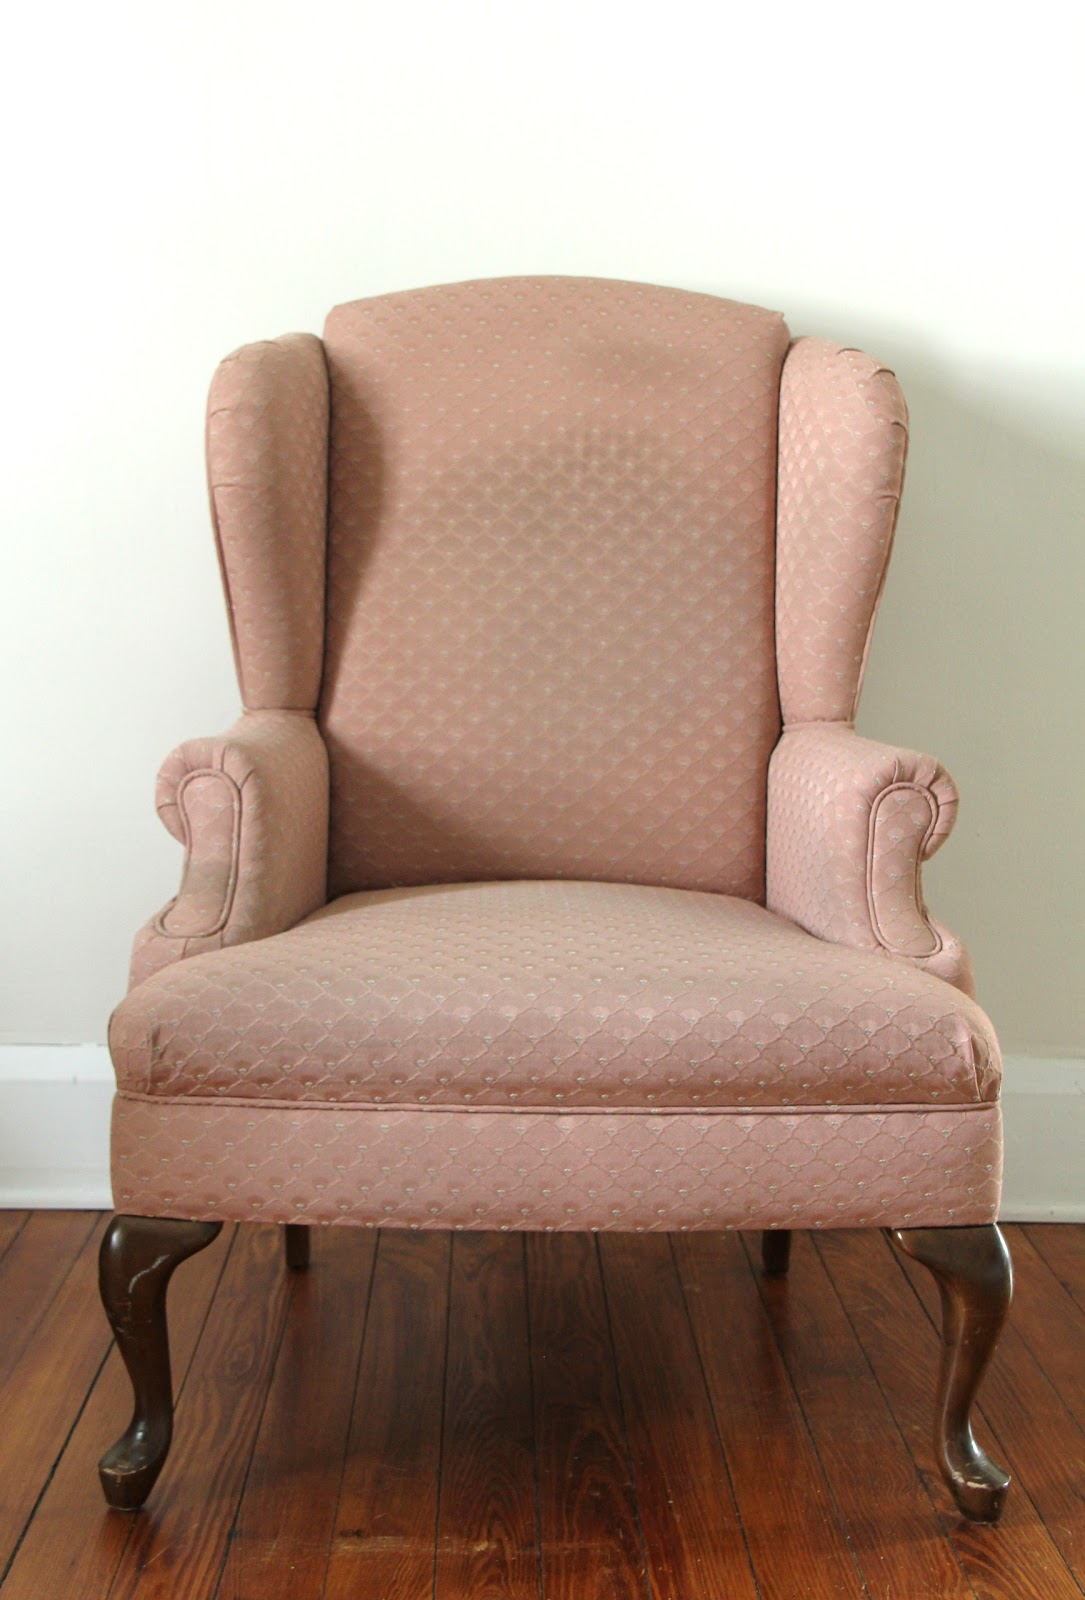 upholstered wingback chair rio backpack with cooler lovely little life project